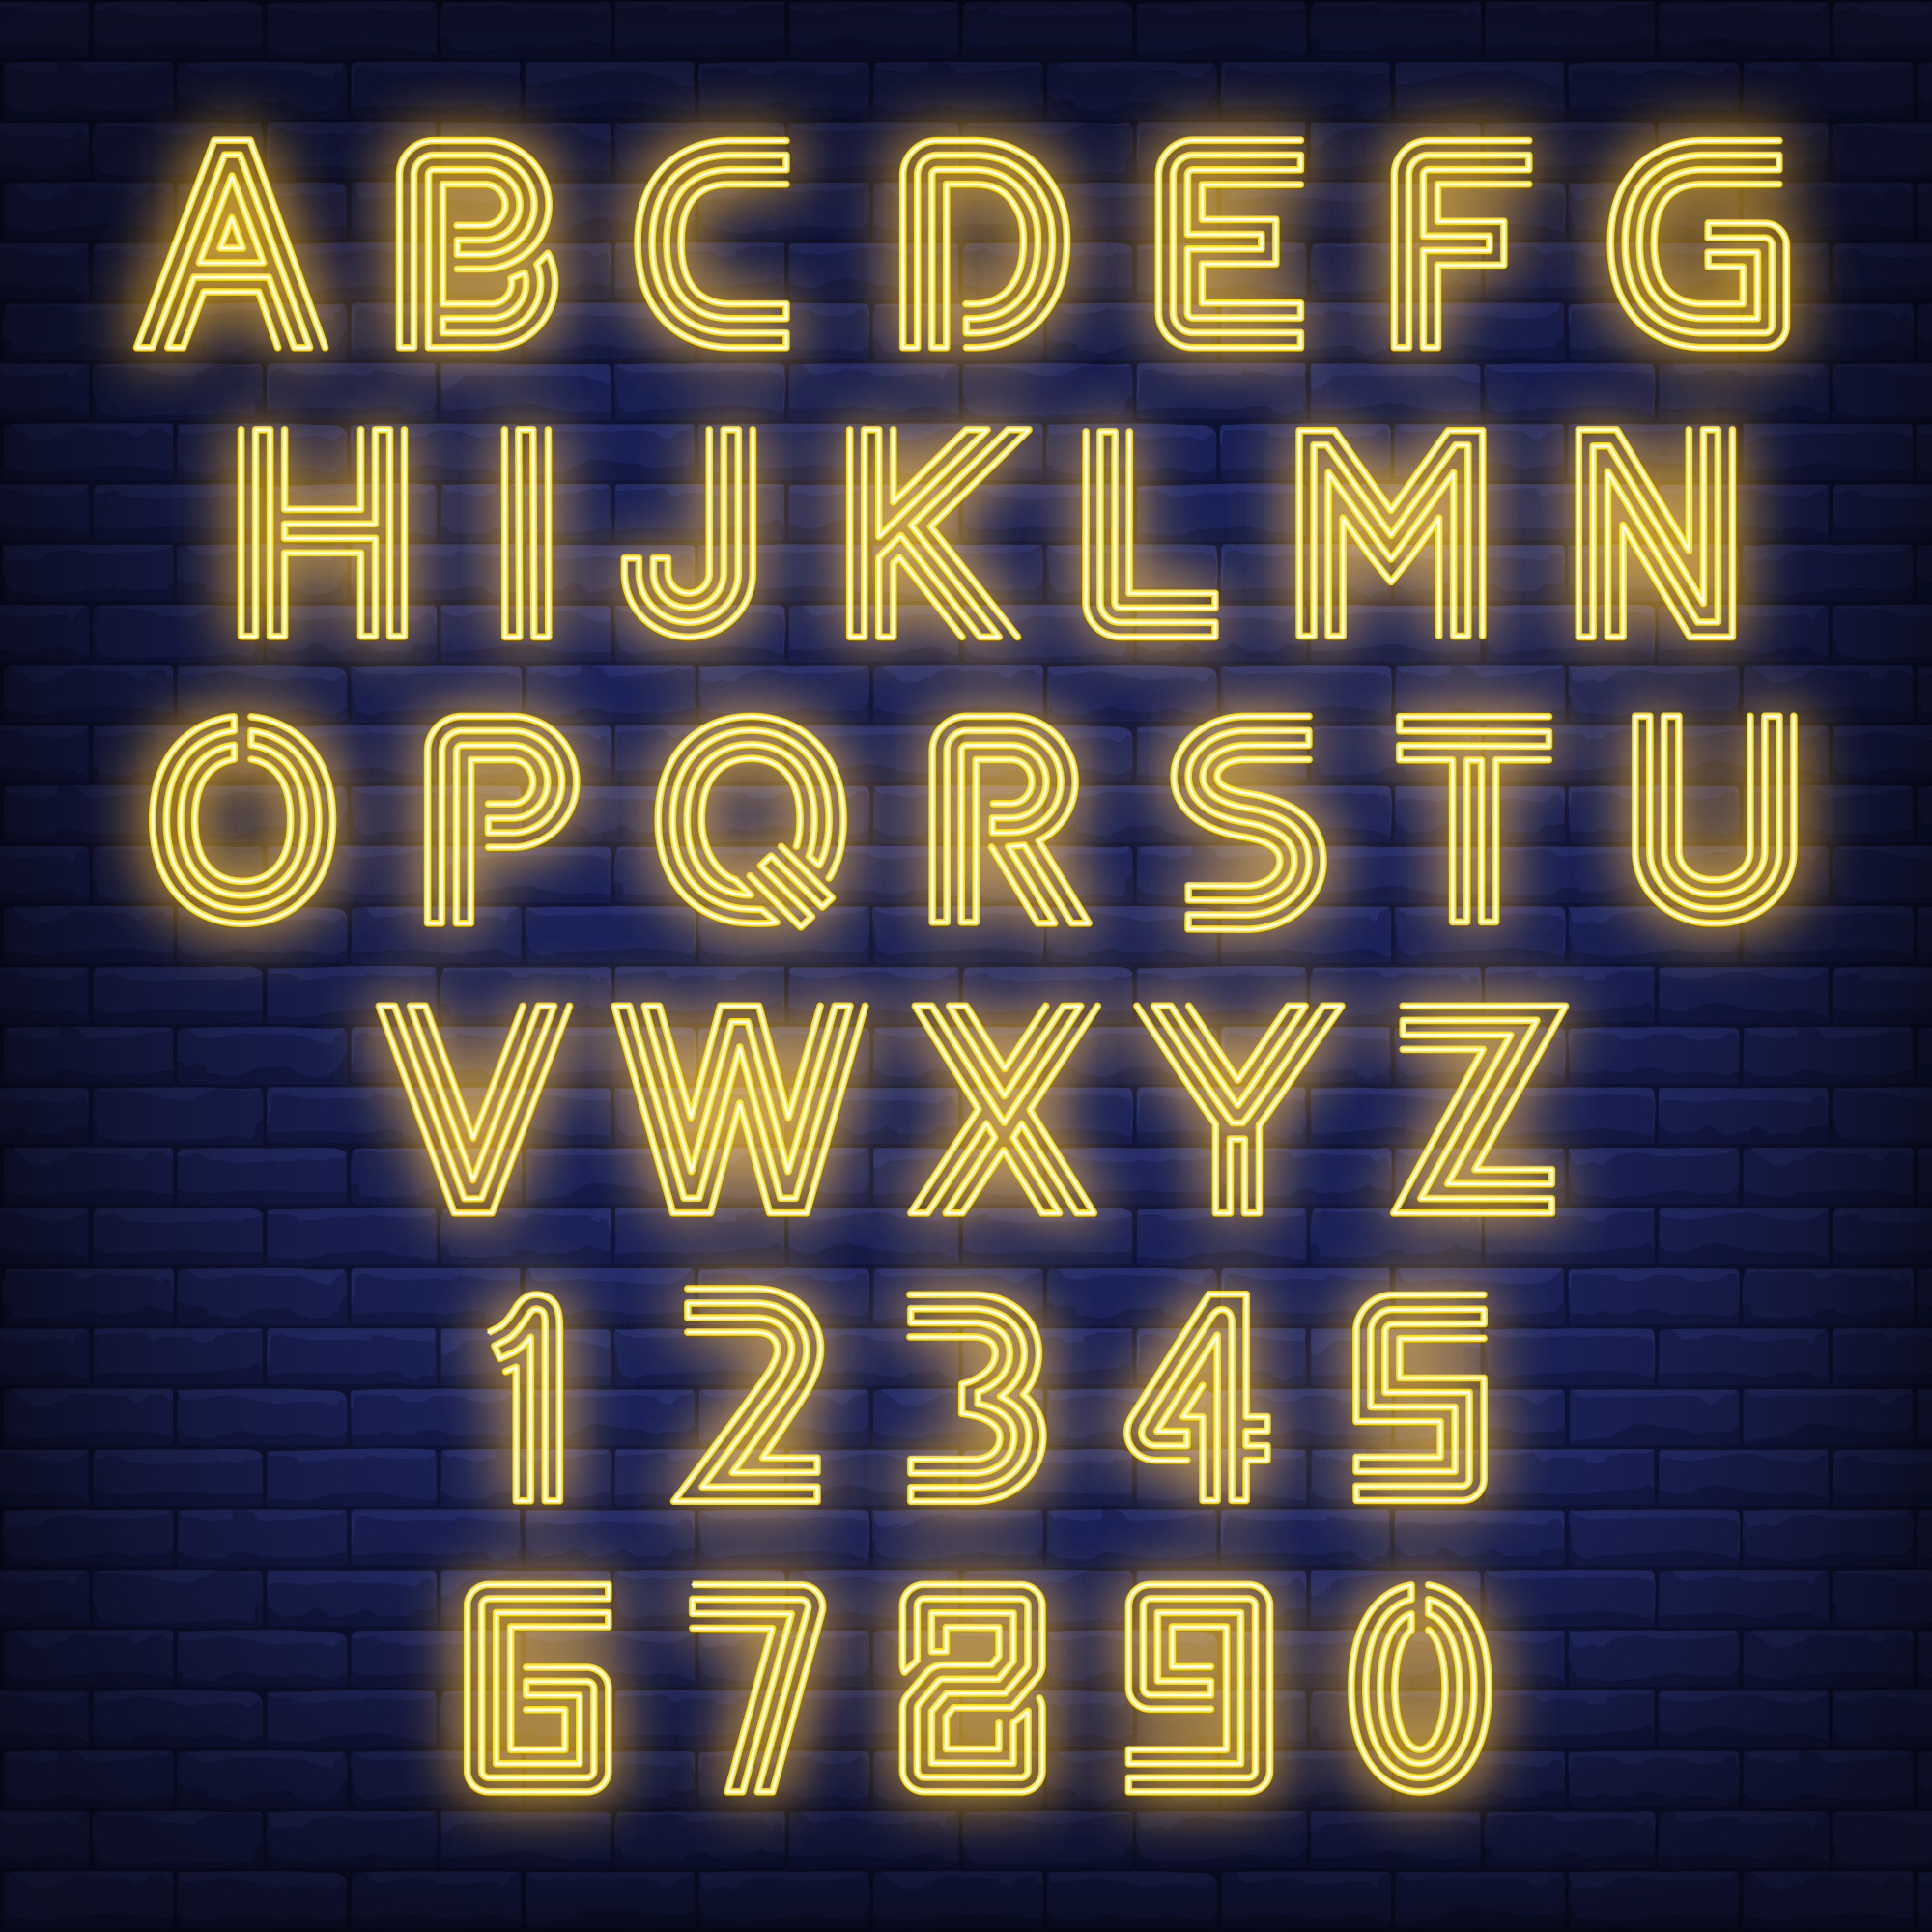 English alphabet neon sign. Glowing letters and figures on dark brick wall background.